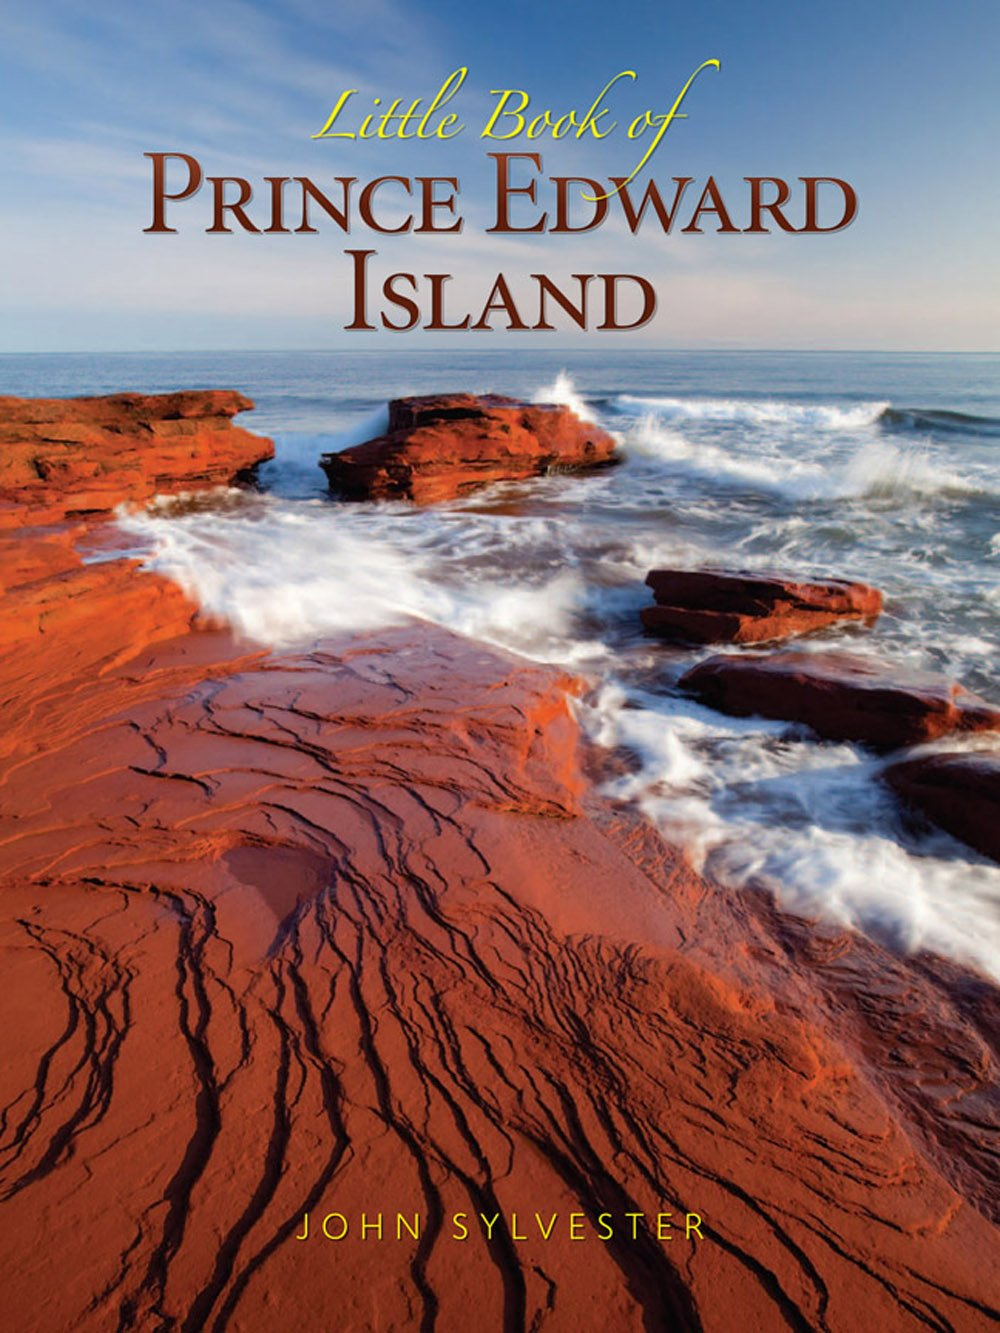 Little Book of Prince Edward Island by John Sylvester